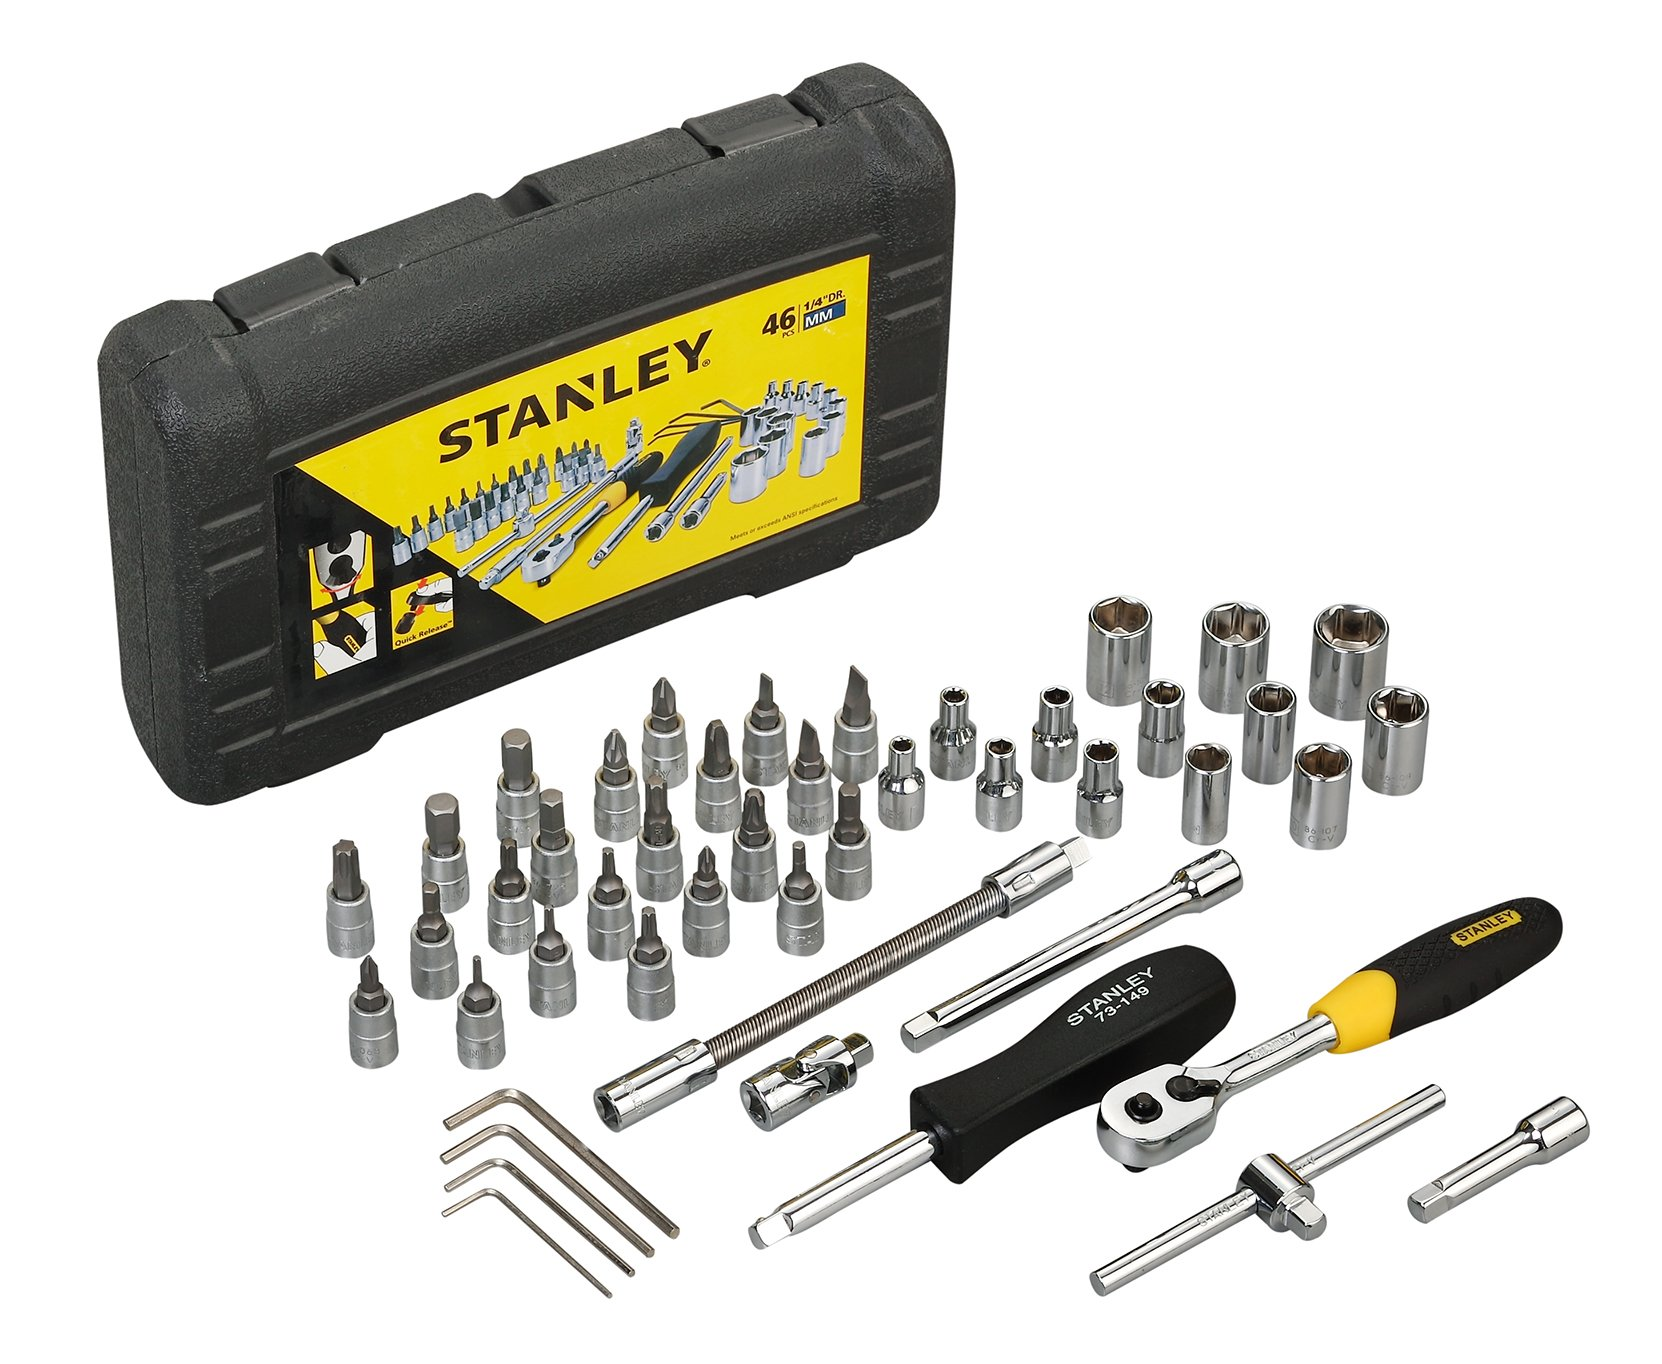 Stanley STMT72794-8-12 1/4 Drive Metric Socket Set (46-Pieces) product image